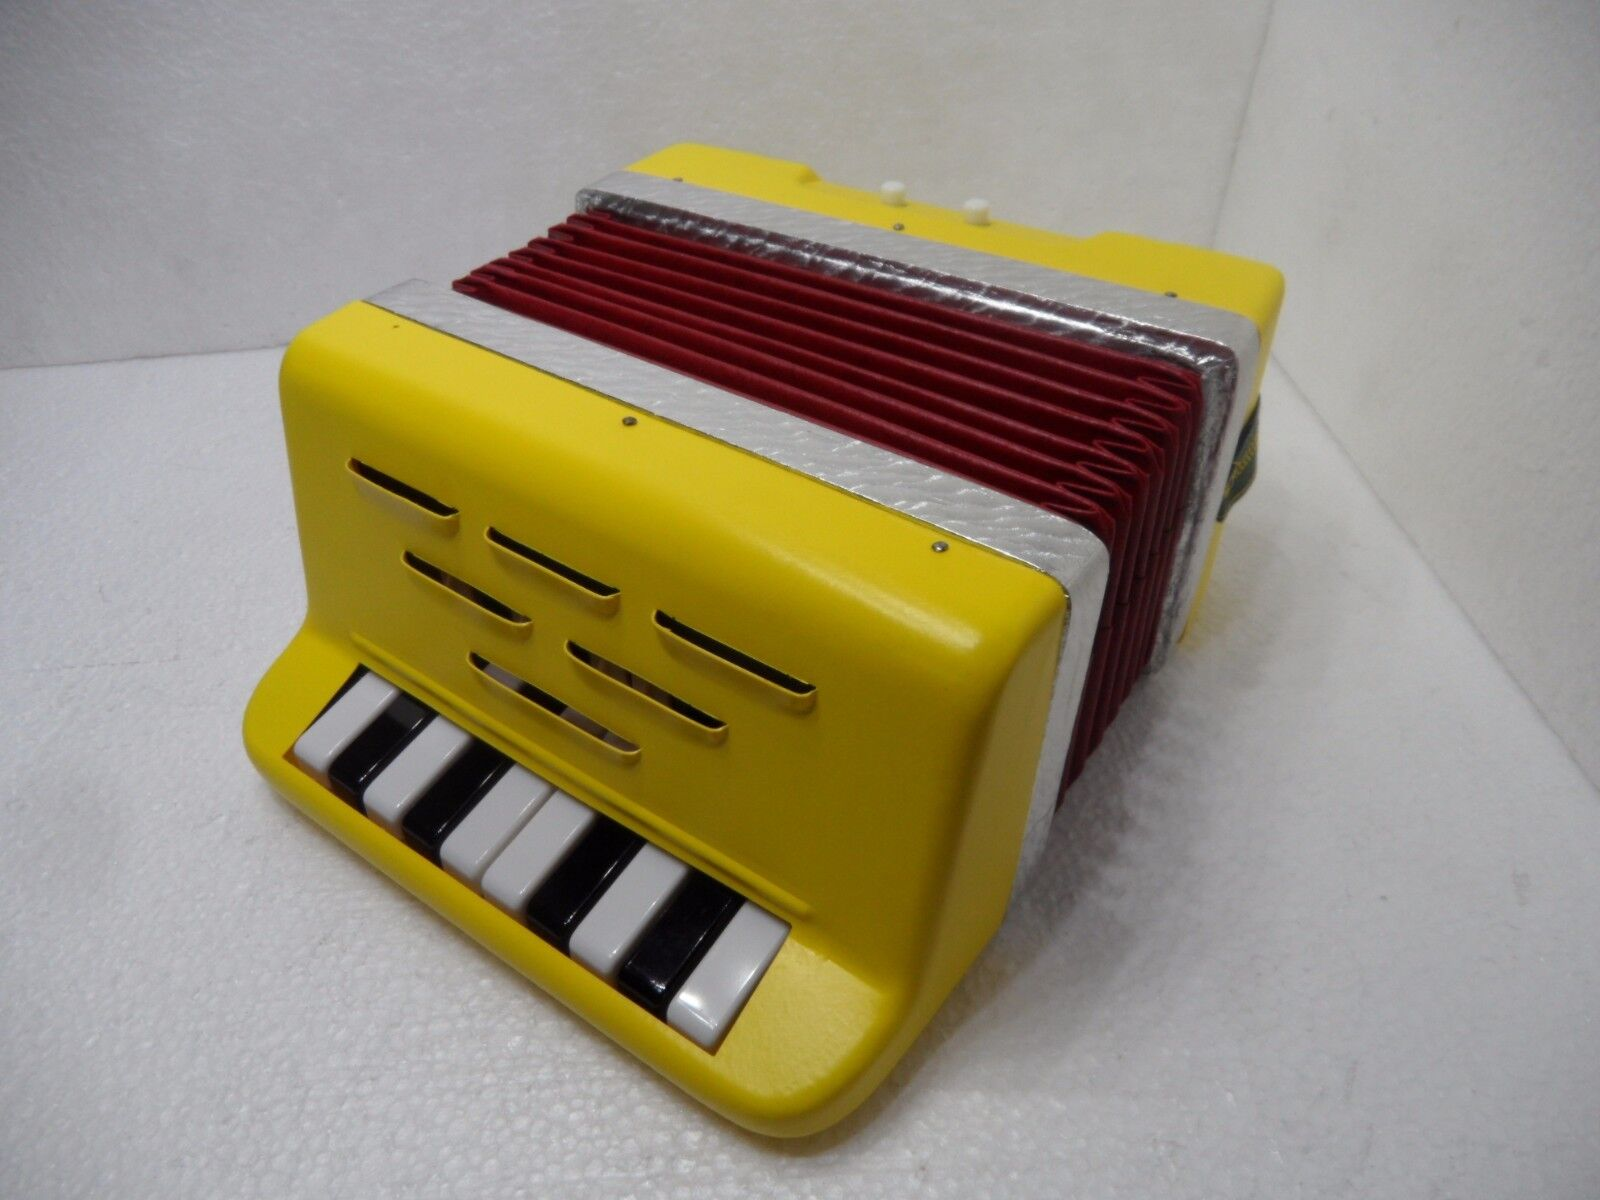 Rare Vintage TOY ACCORDION 55 10 2 w box made in Germany(GDR)